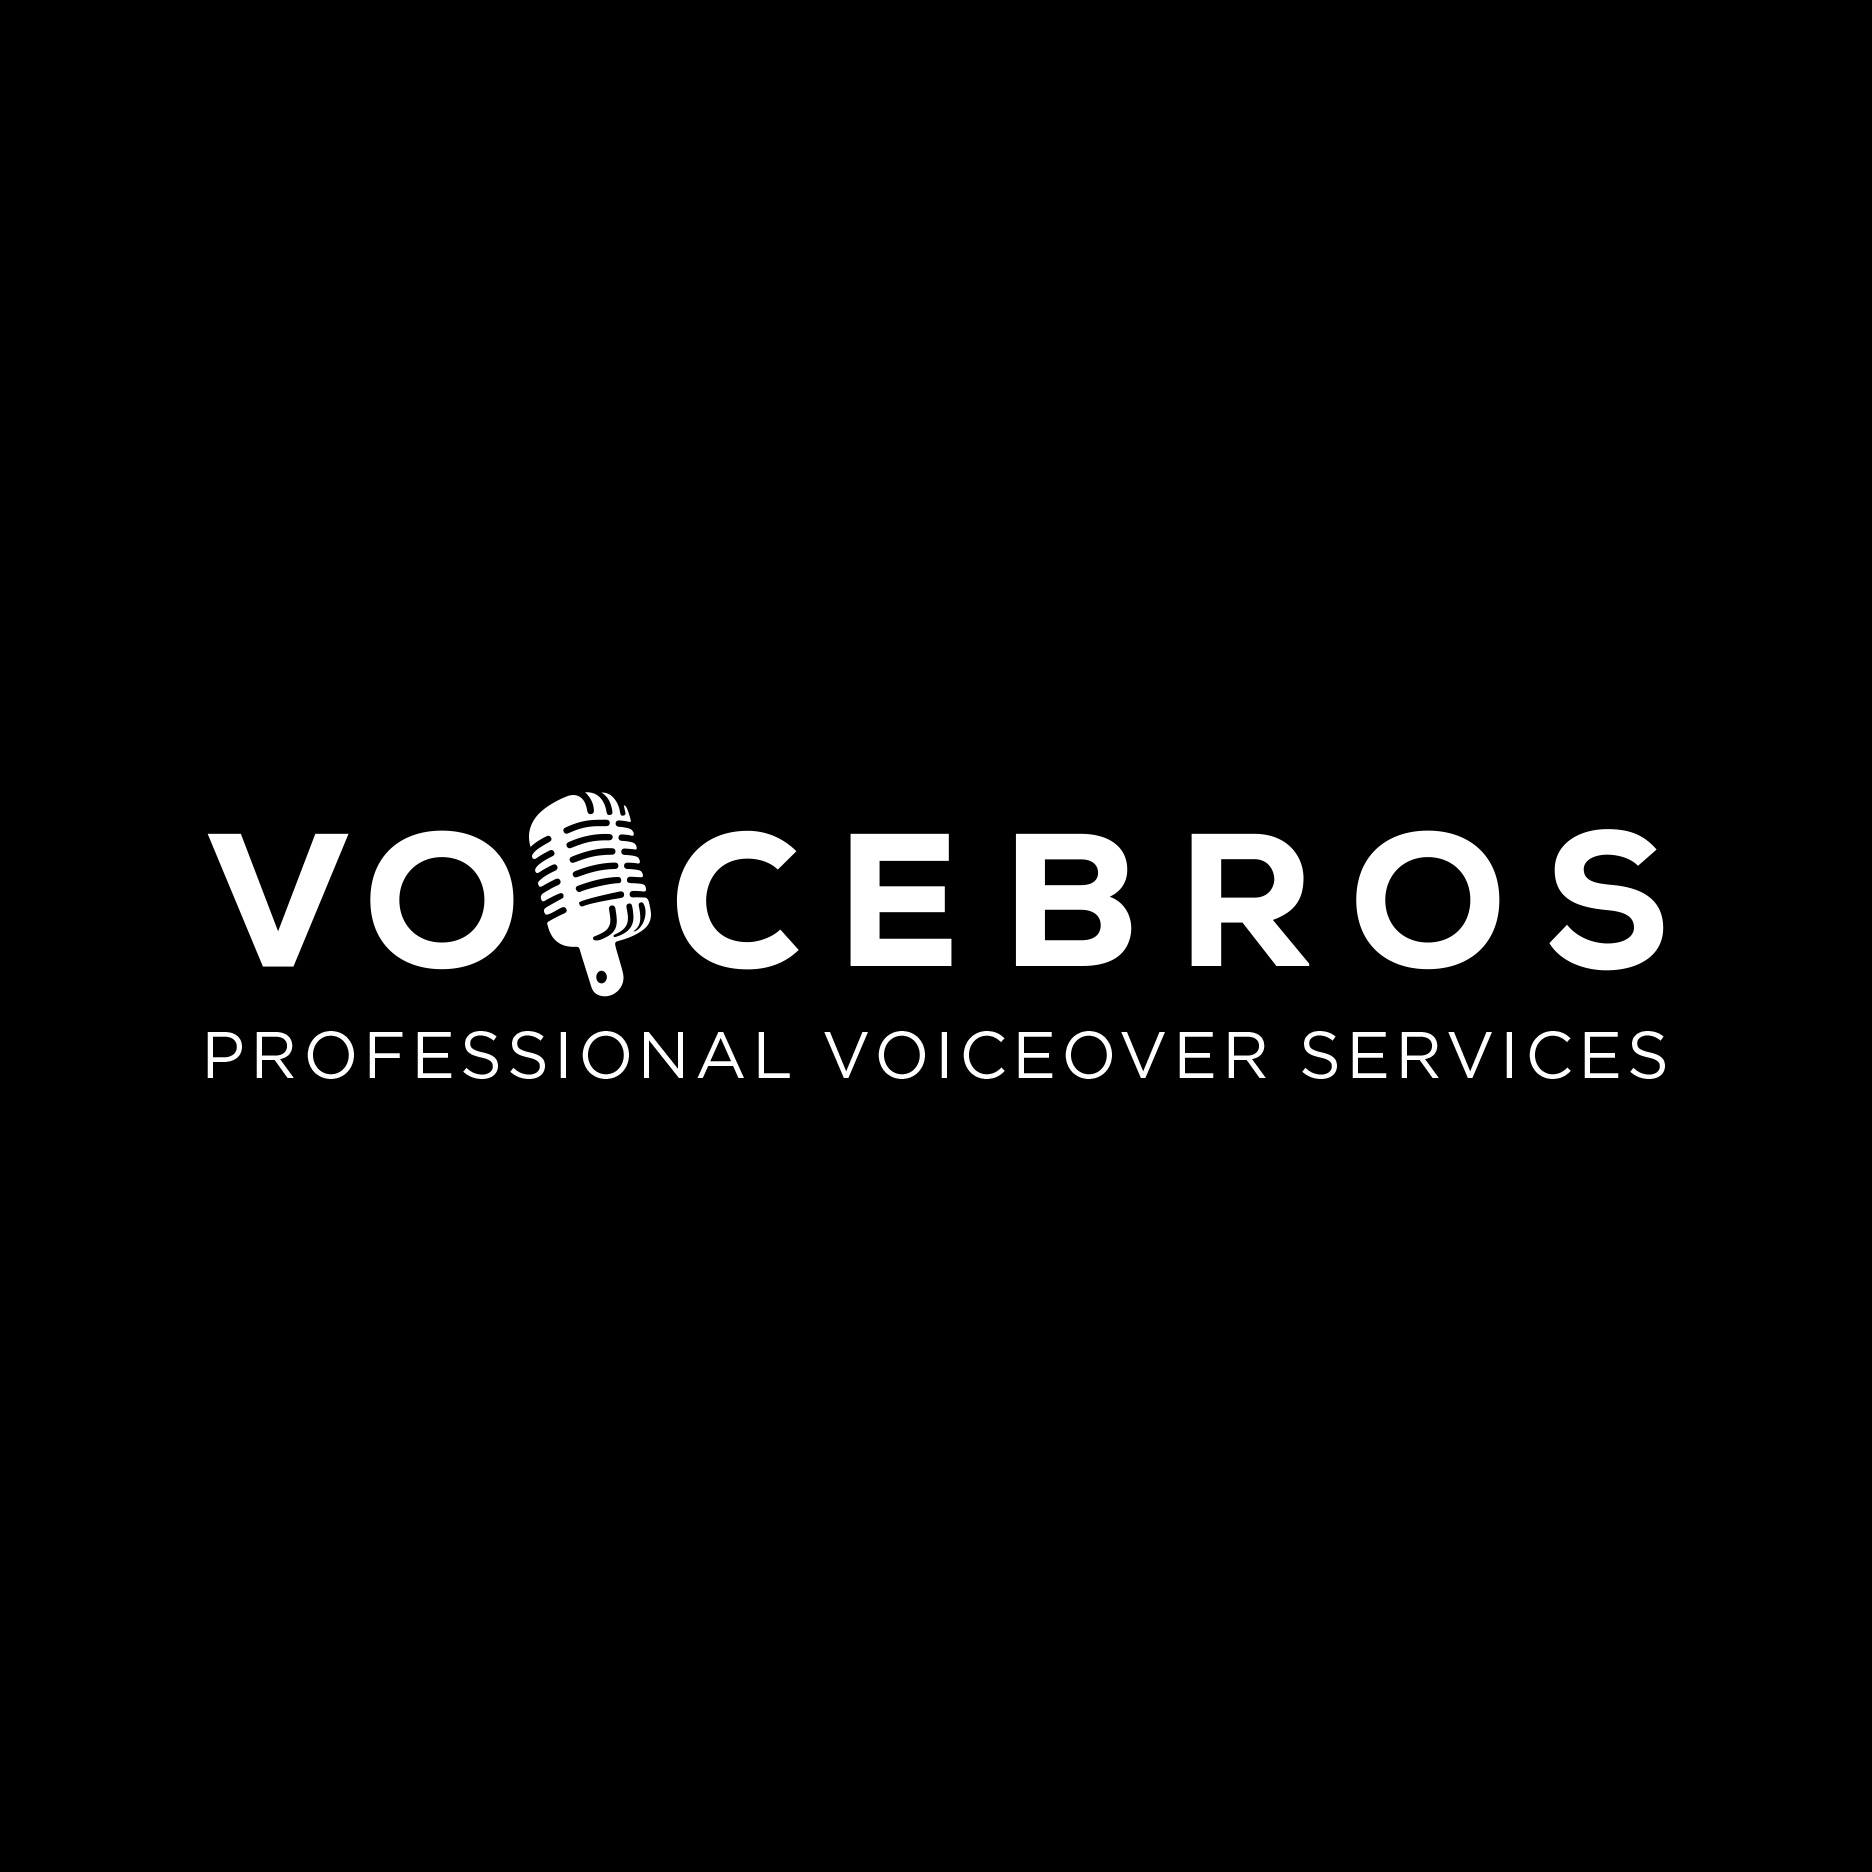 Mieko T. is a voice over actor